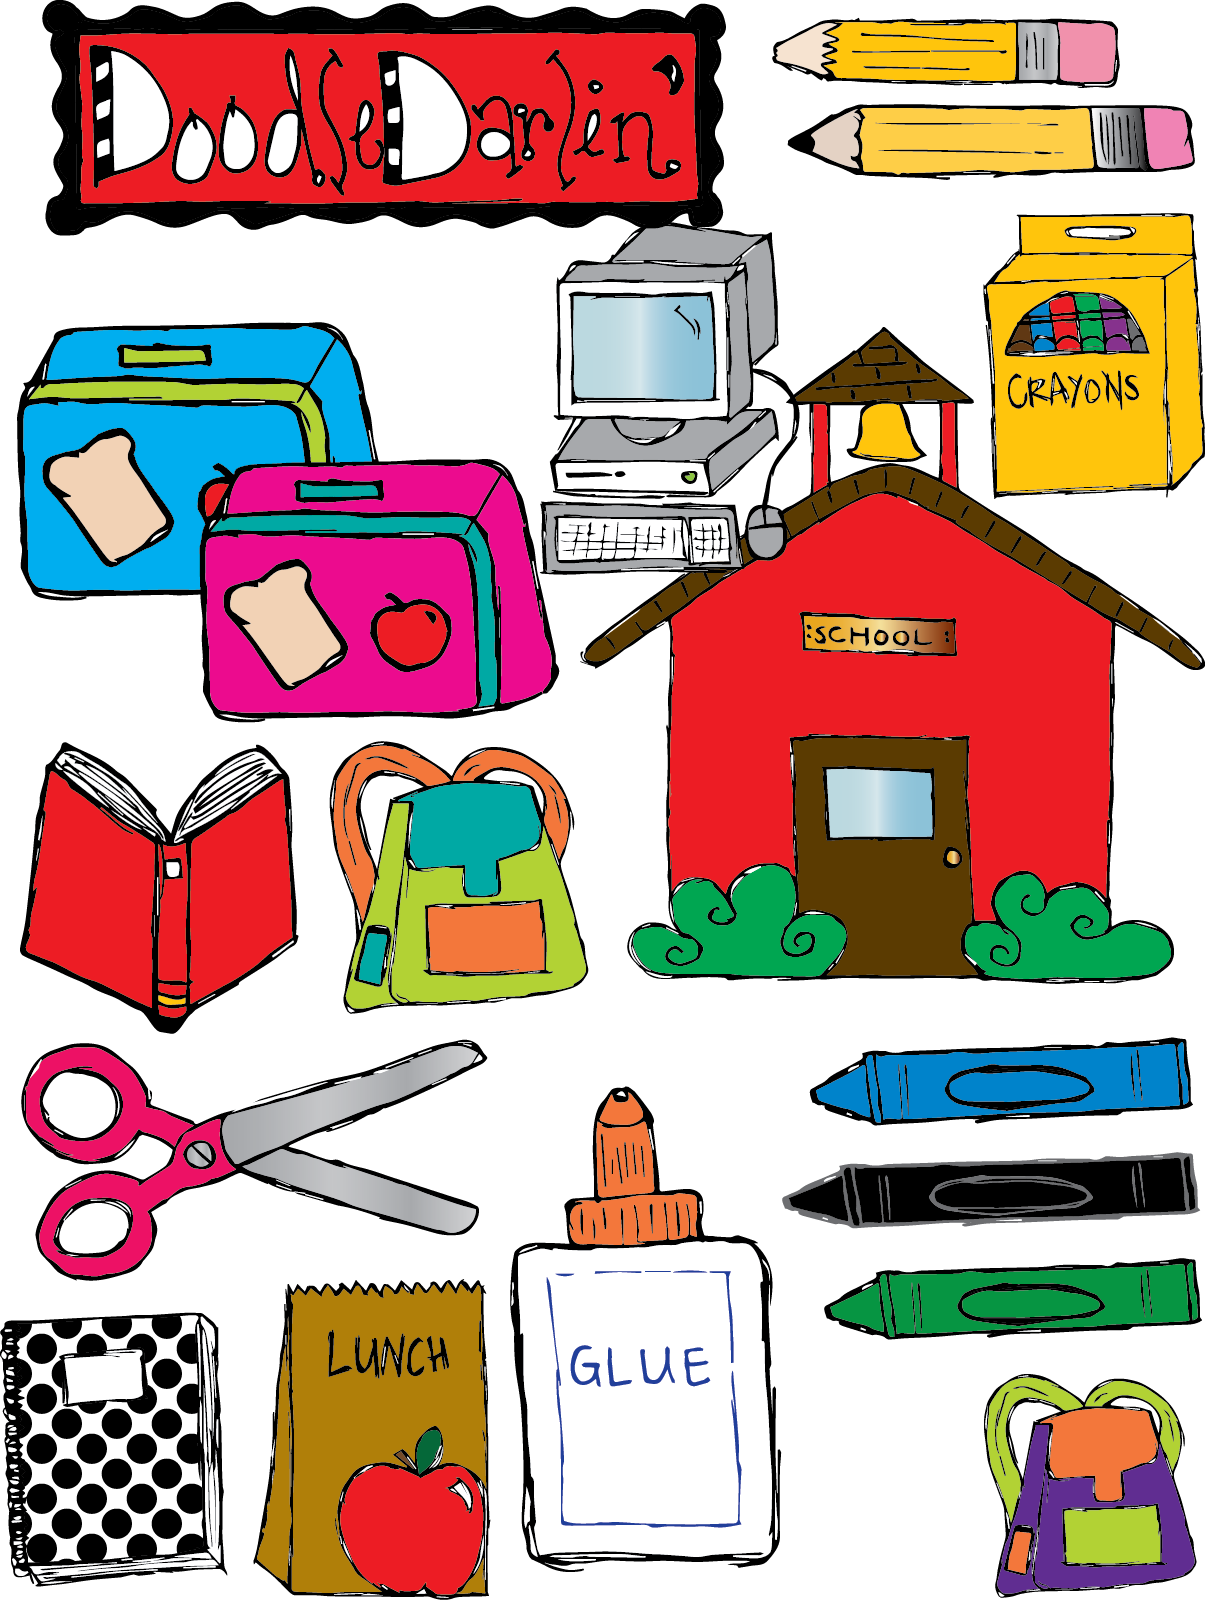 Go back images for school materials clipart